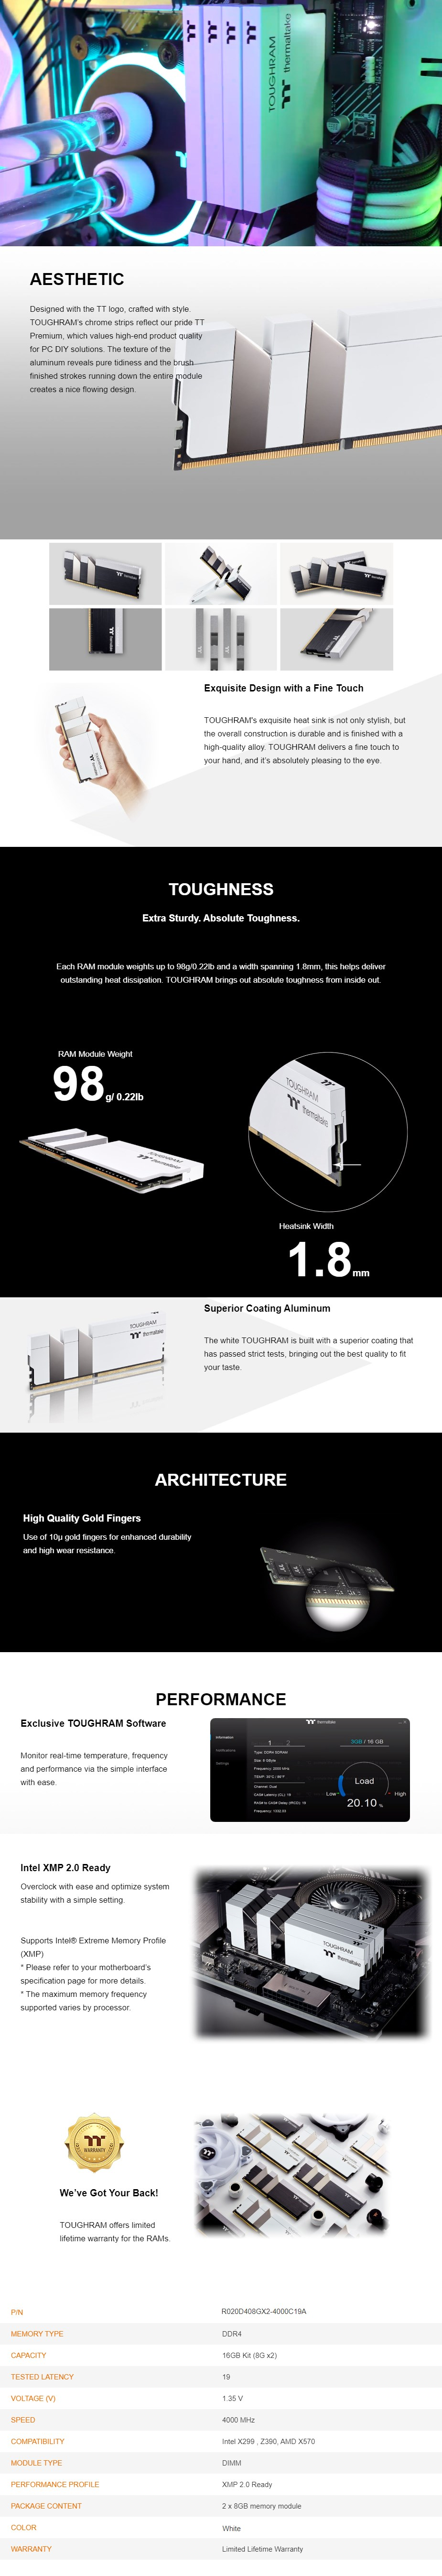 Thermaltake TOUGHRAM 16GB (2x8GB) DDR4 4000MHz Memory - White - Overview 1